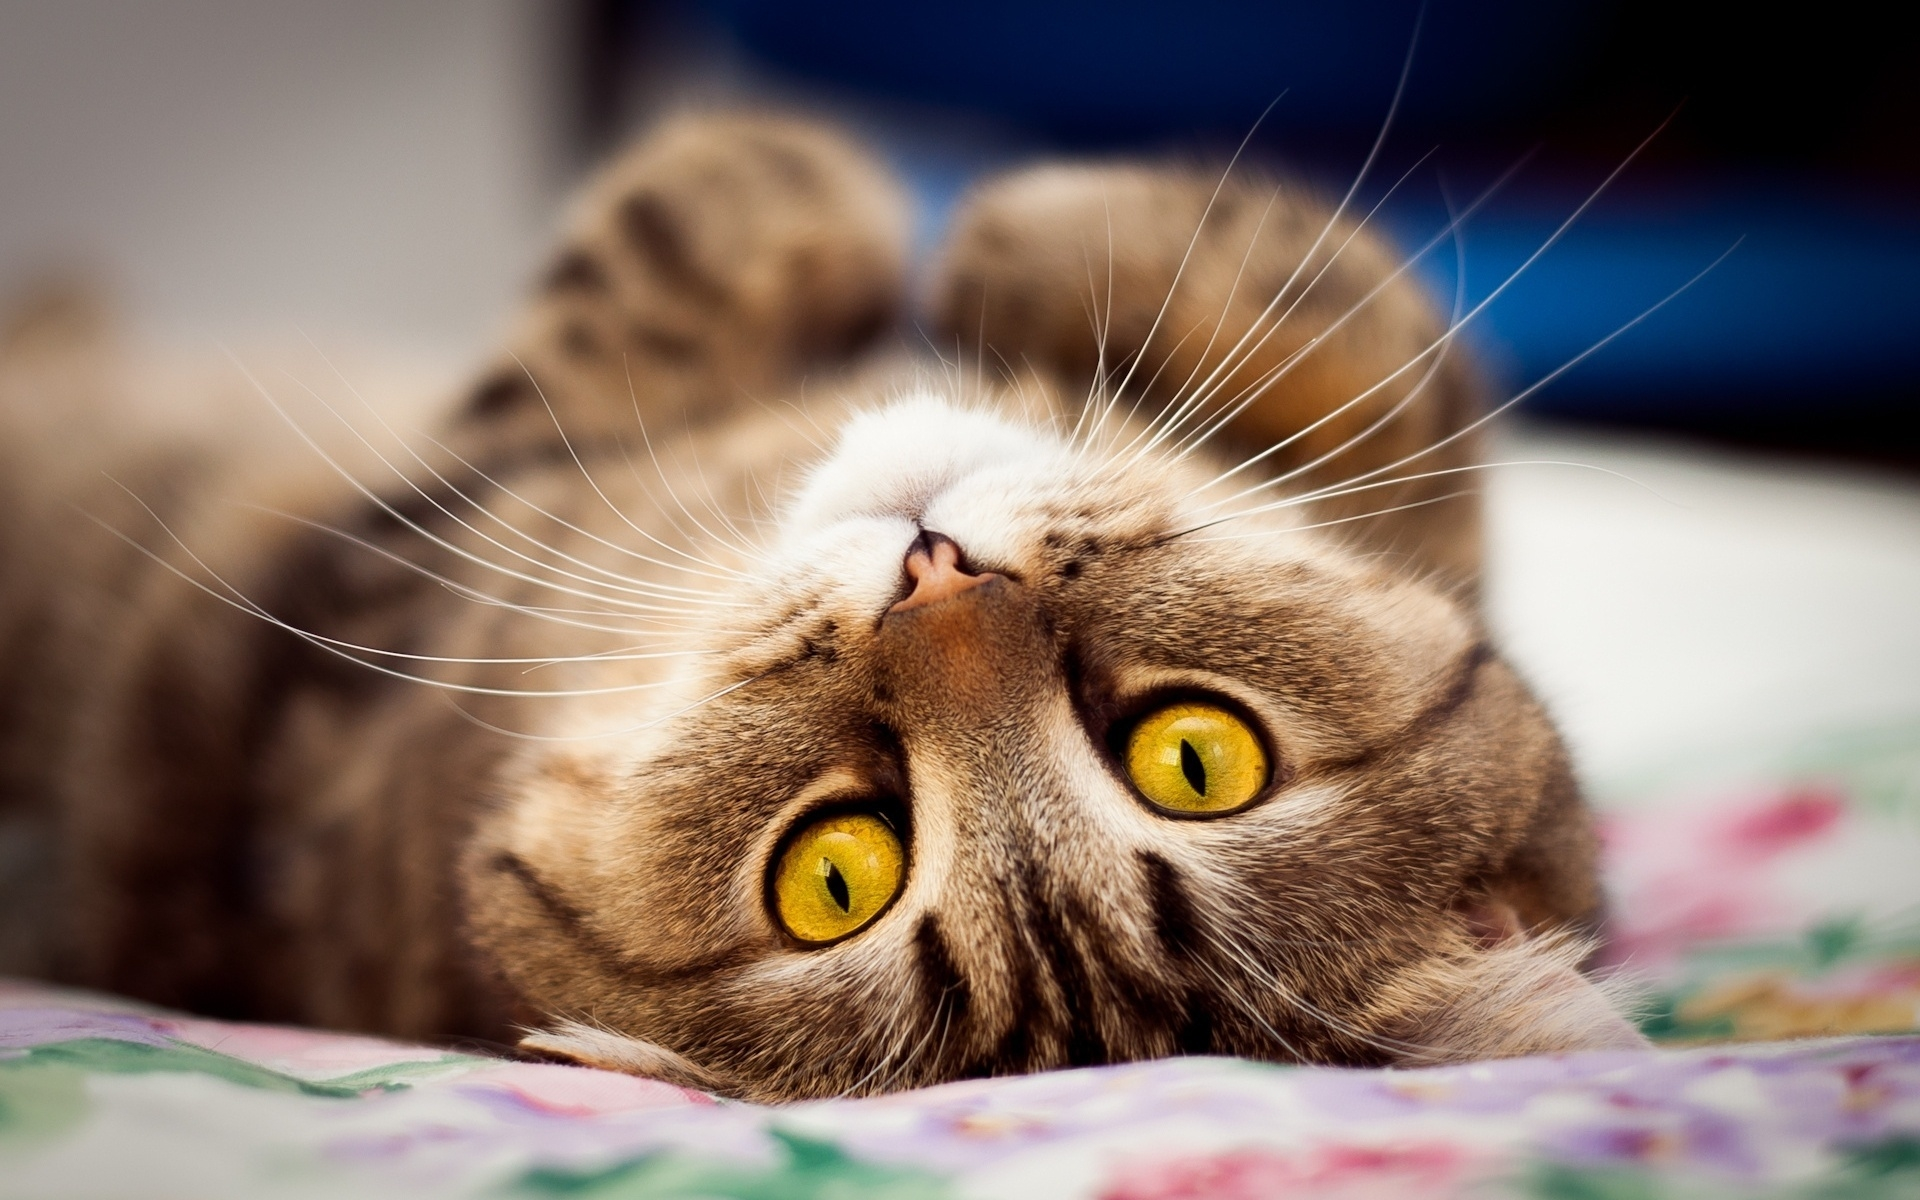 Cat, Whiskers, Eyes 1920x1200 wallpaper | HD Wallpapers